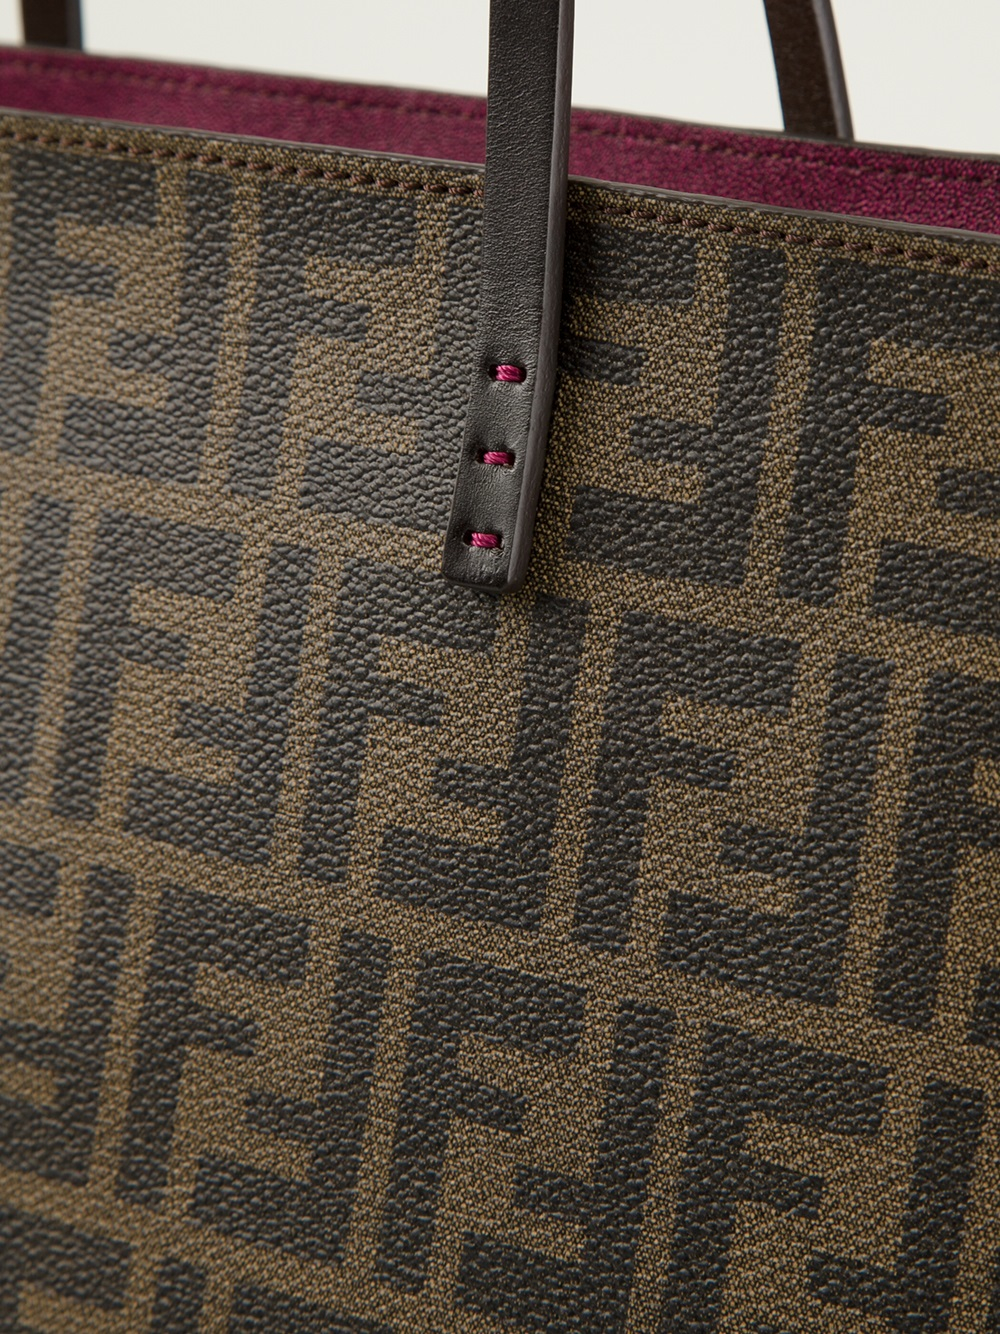 6aae62a452 ... discount code for lyst fendi shopping roll bag in brown 9d6d3 2f517